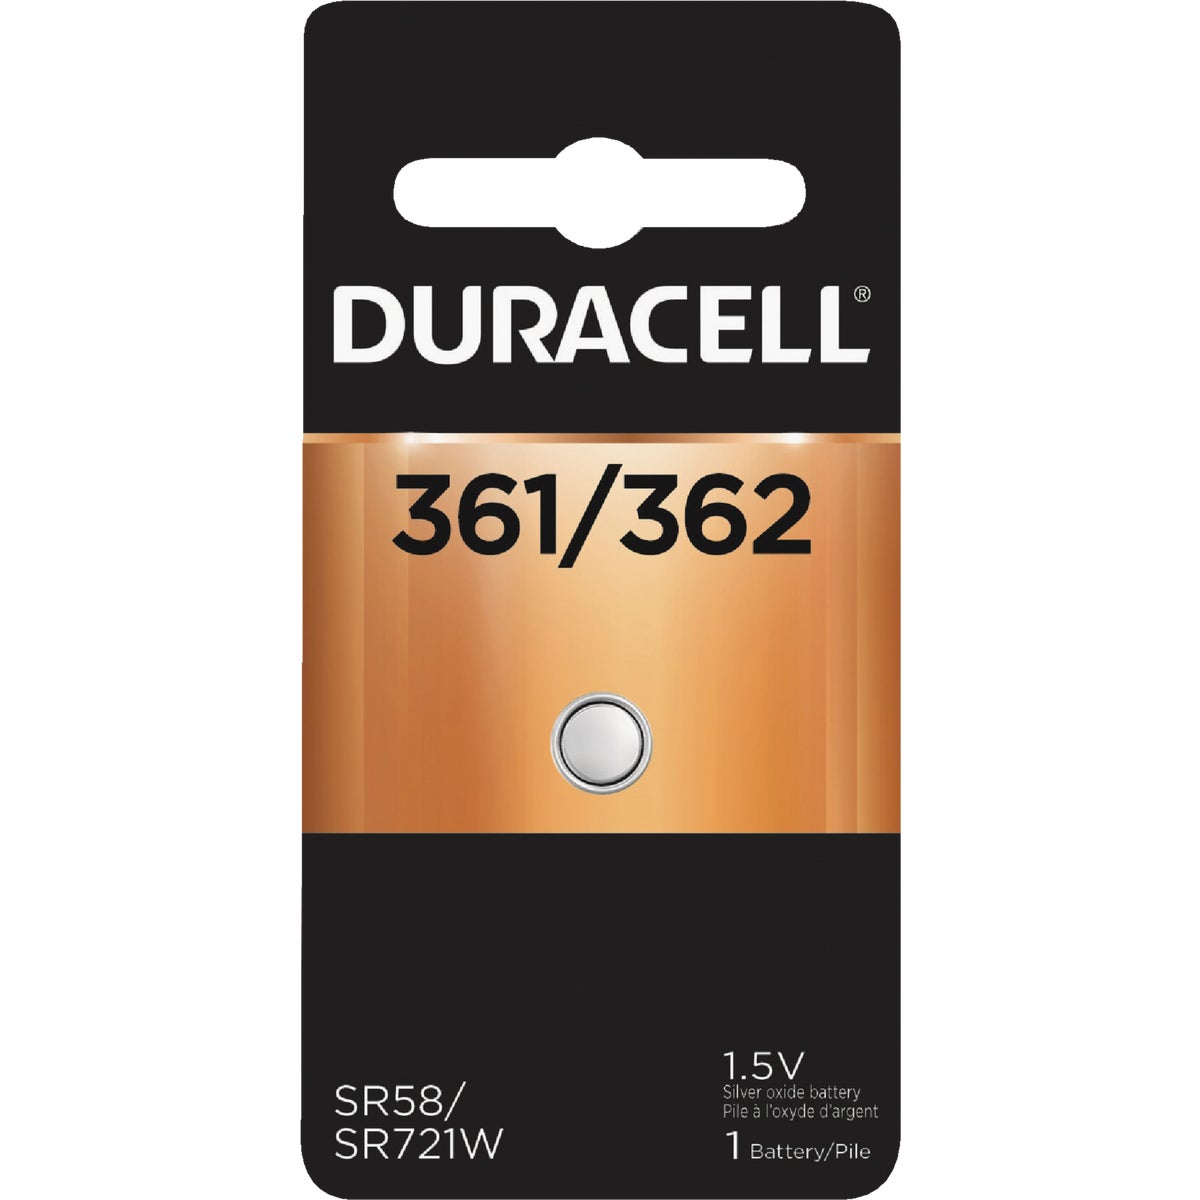 D361/362 1.5V WA BATTERY - 40887 by P & G  Duracell